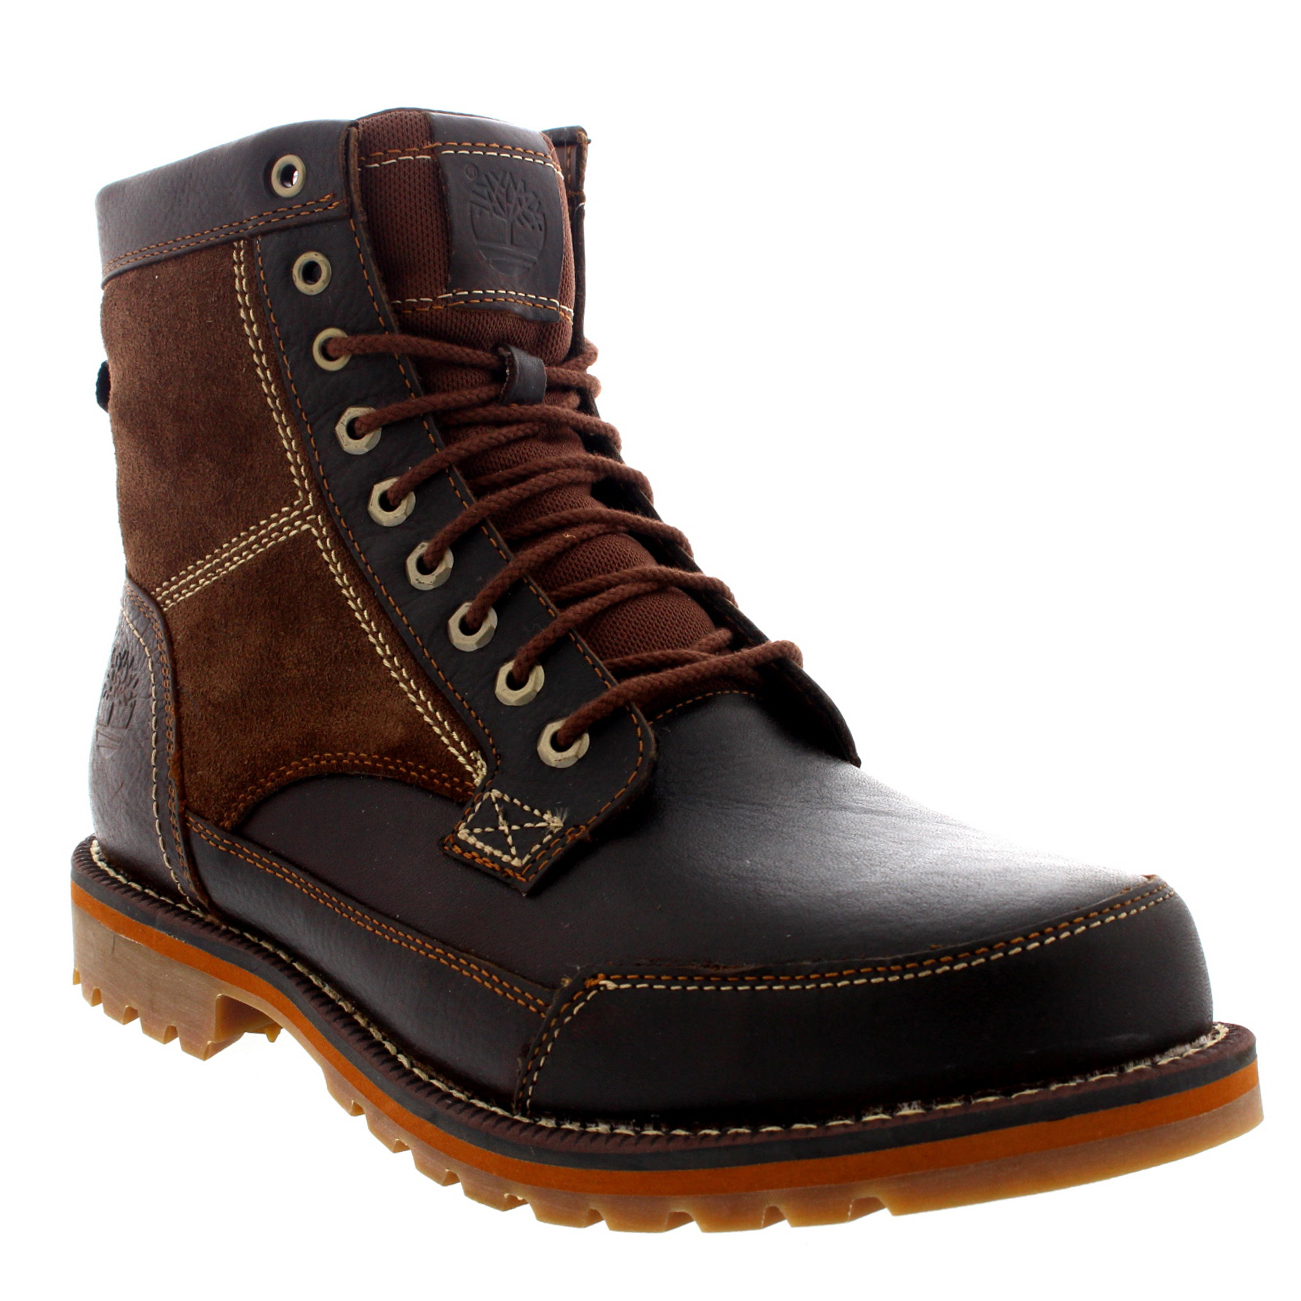 "Timberland Larchmont 6"" Mid Top"